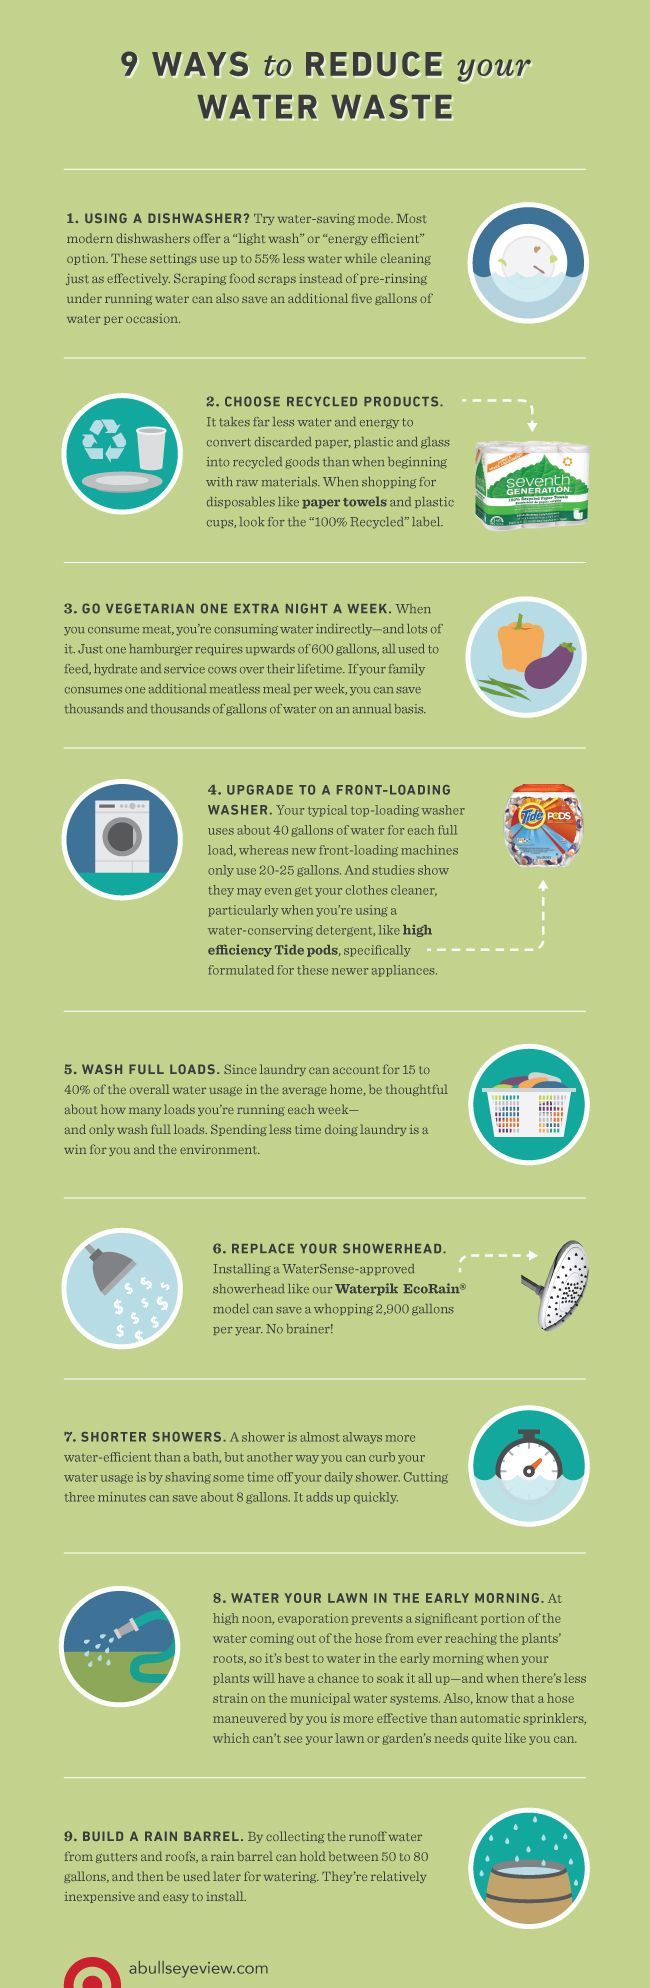 Check out our 9 ways to reduce your water waste - every little bit makes a huge impact on the environment! Do your part!